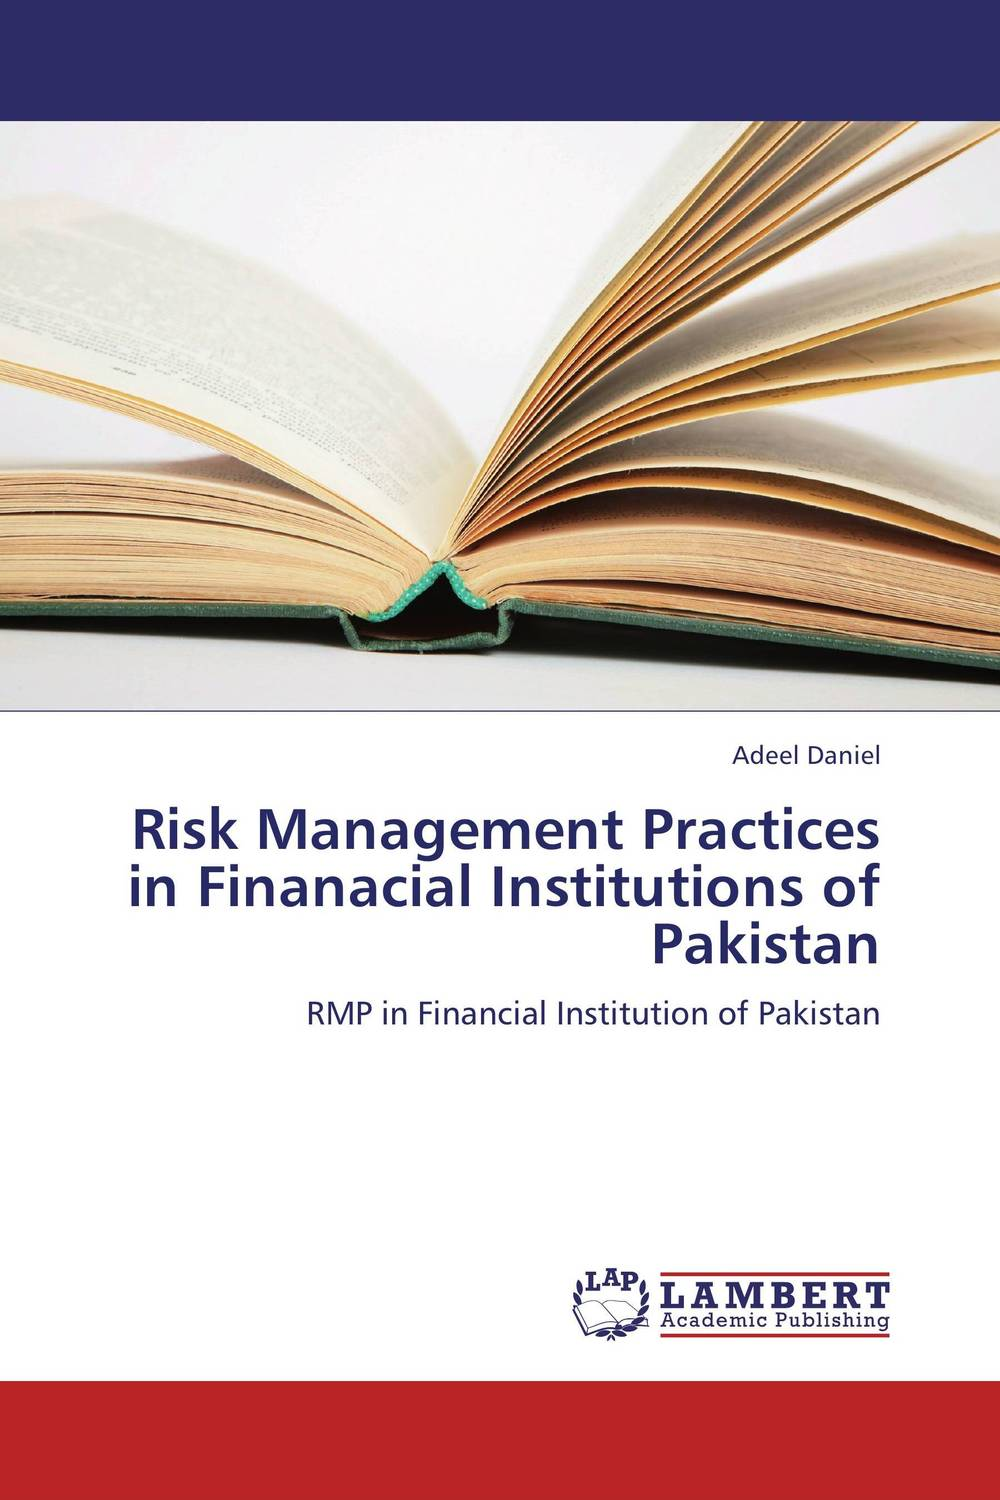 Risk Management Practices in Finanacial Institutions of Pakistan credit risk management practices